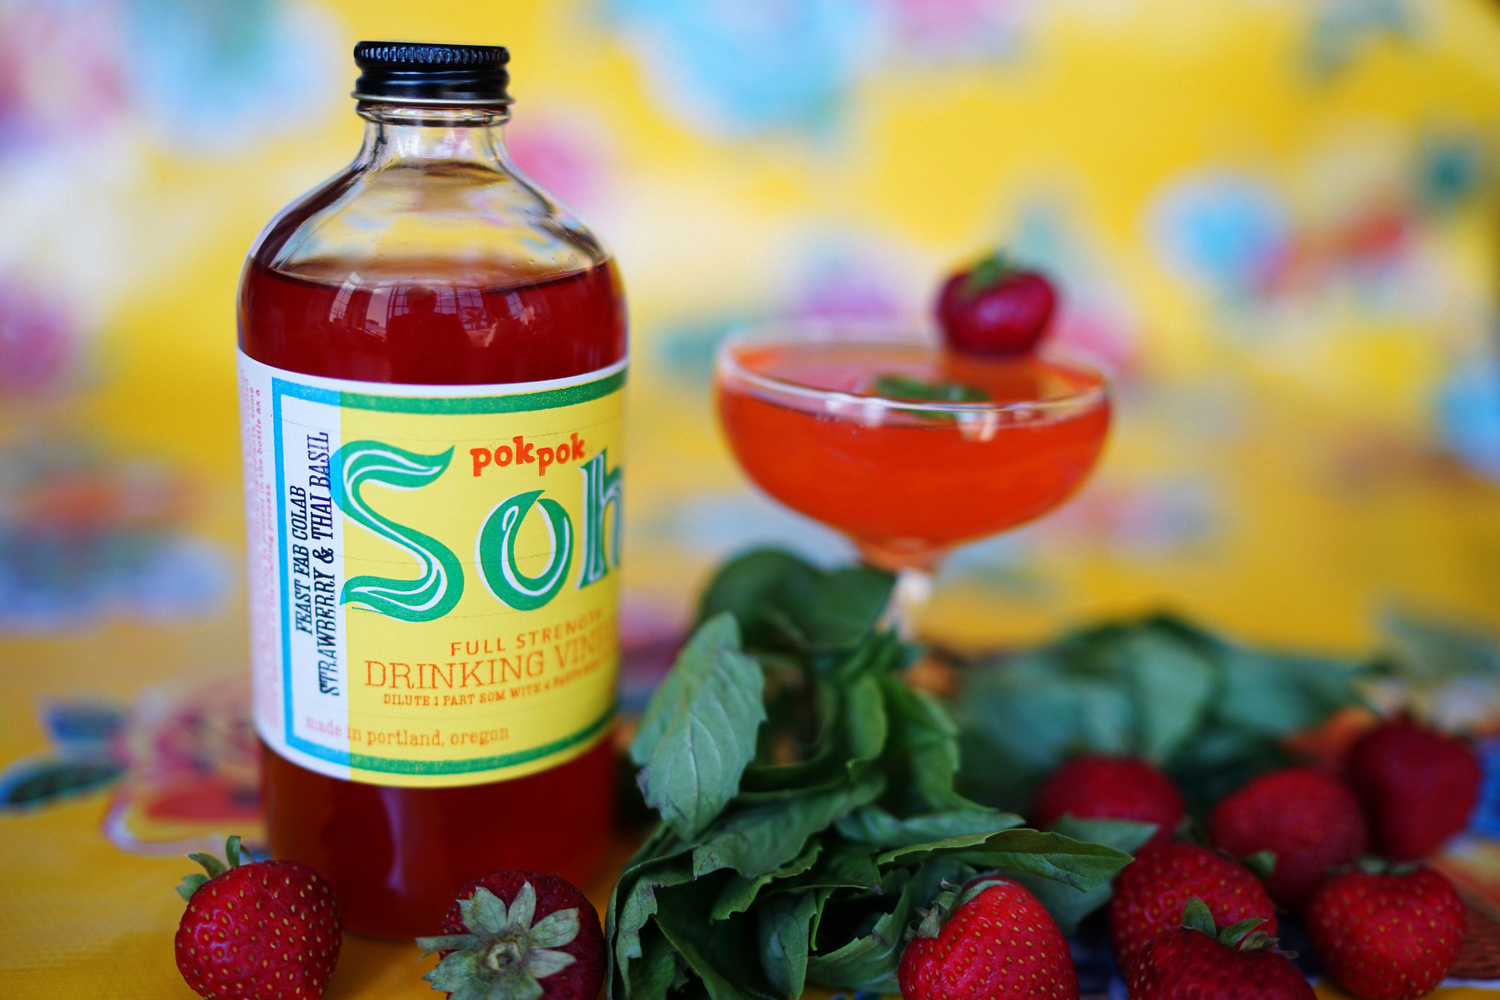 Strawberry & Thai Basil Drinking Vinegar from Pok Pok Som availble exclusively during Feast Portland. (image courtesy of Pok Pok Som)